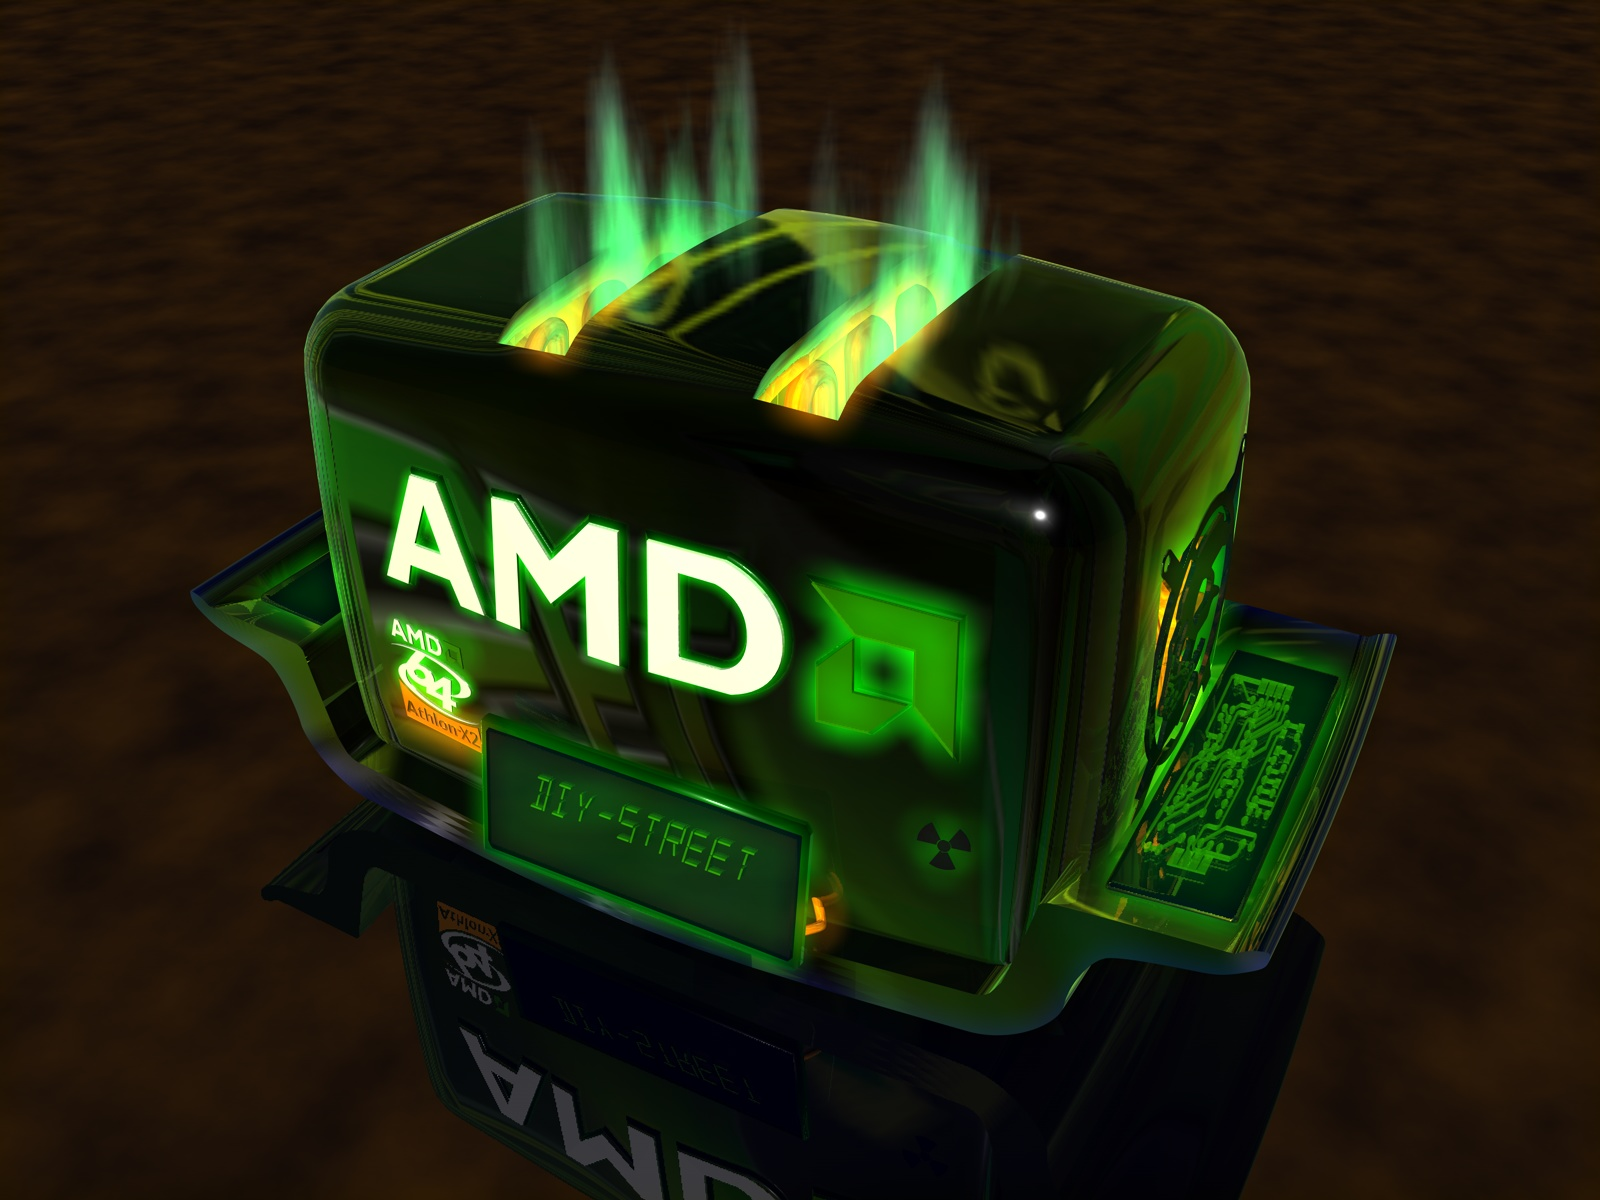 amd fx background by - photo #23